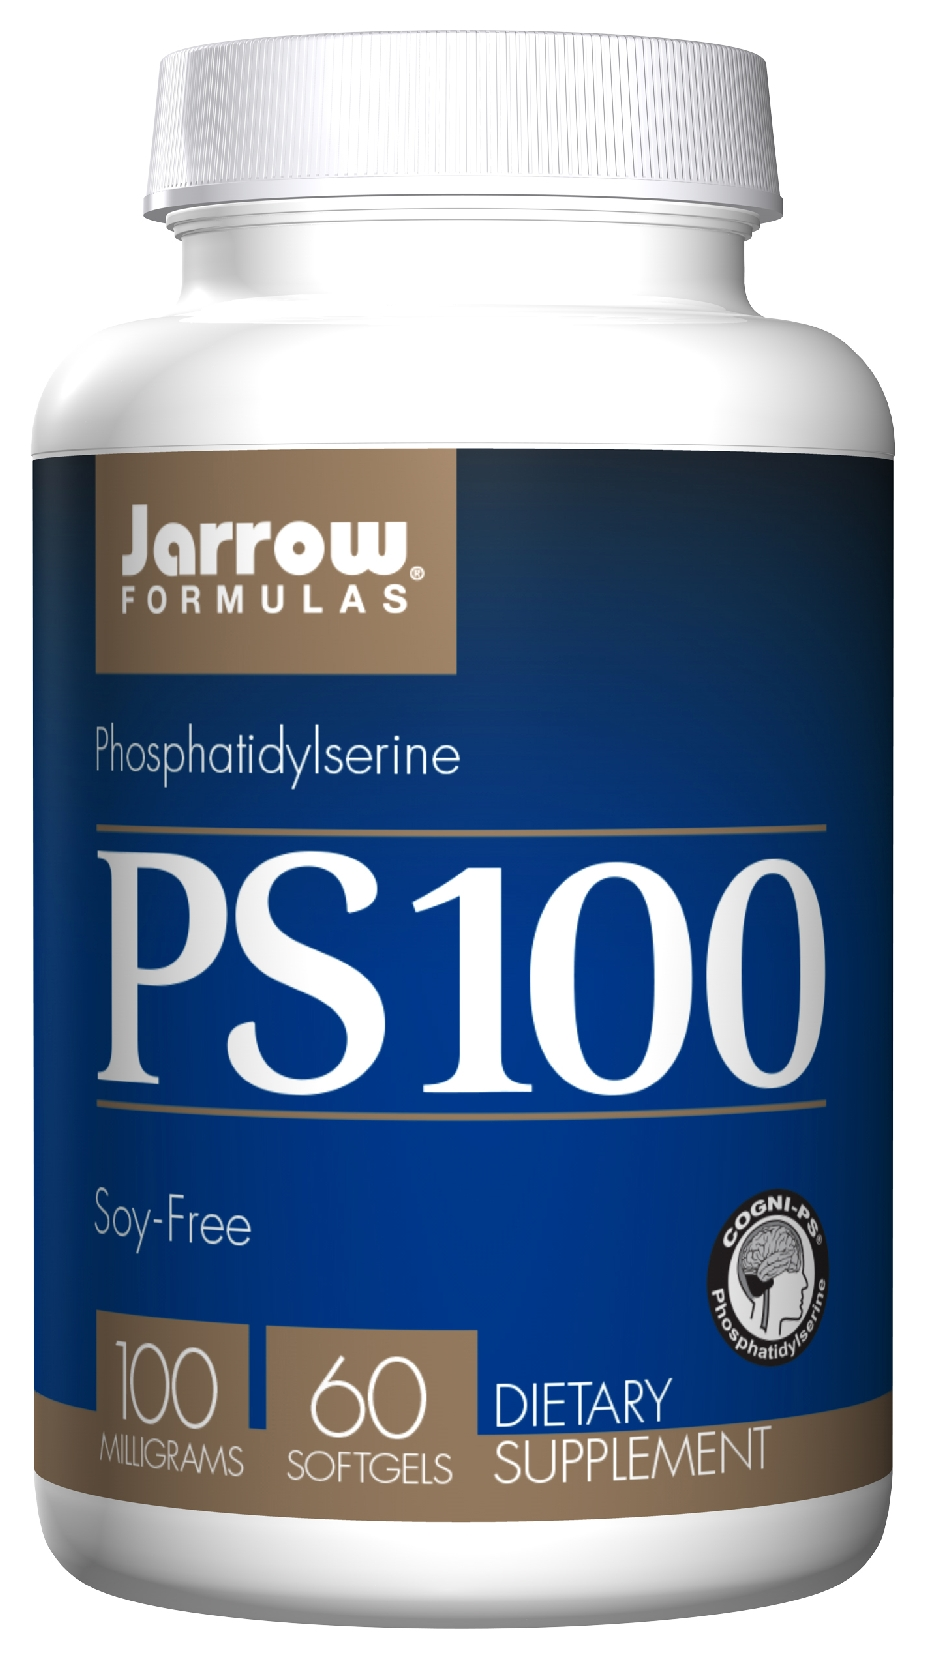 PS 100 Phosphatidylserine 100 mg 60 sgels by Jarrow Formulas